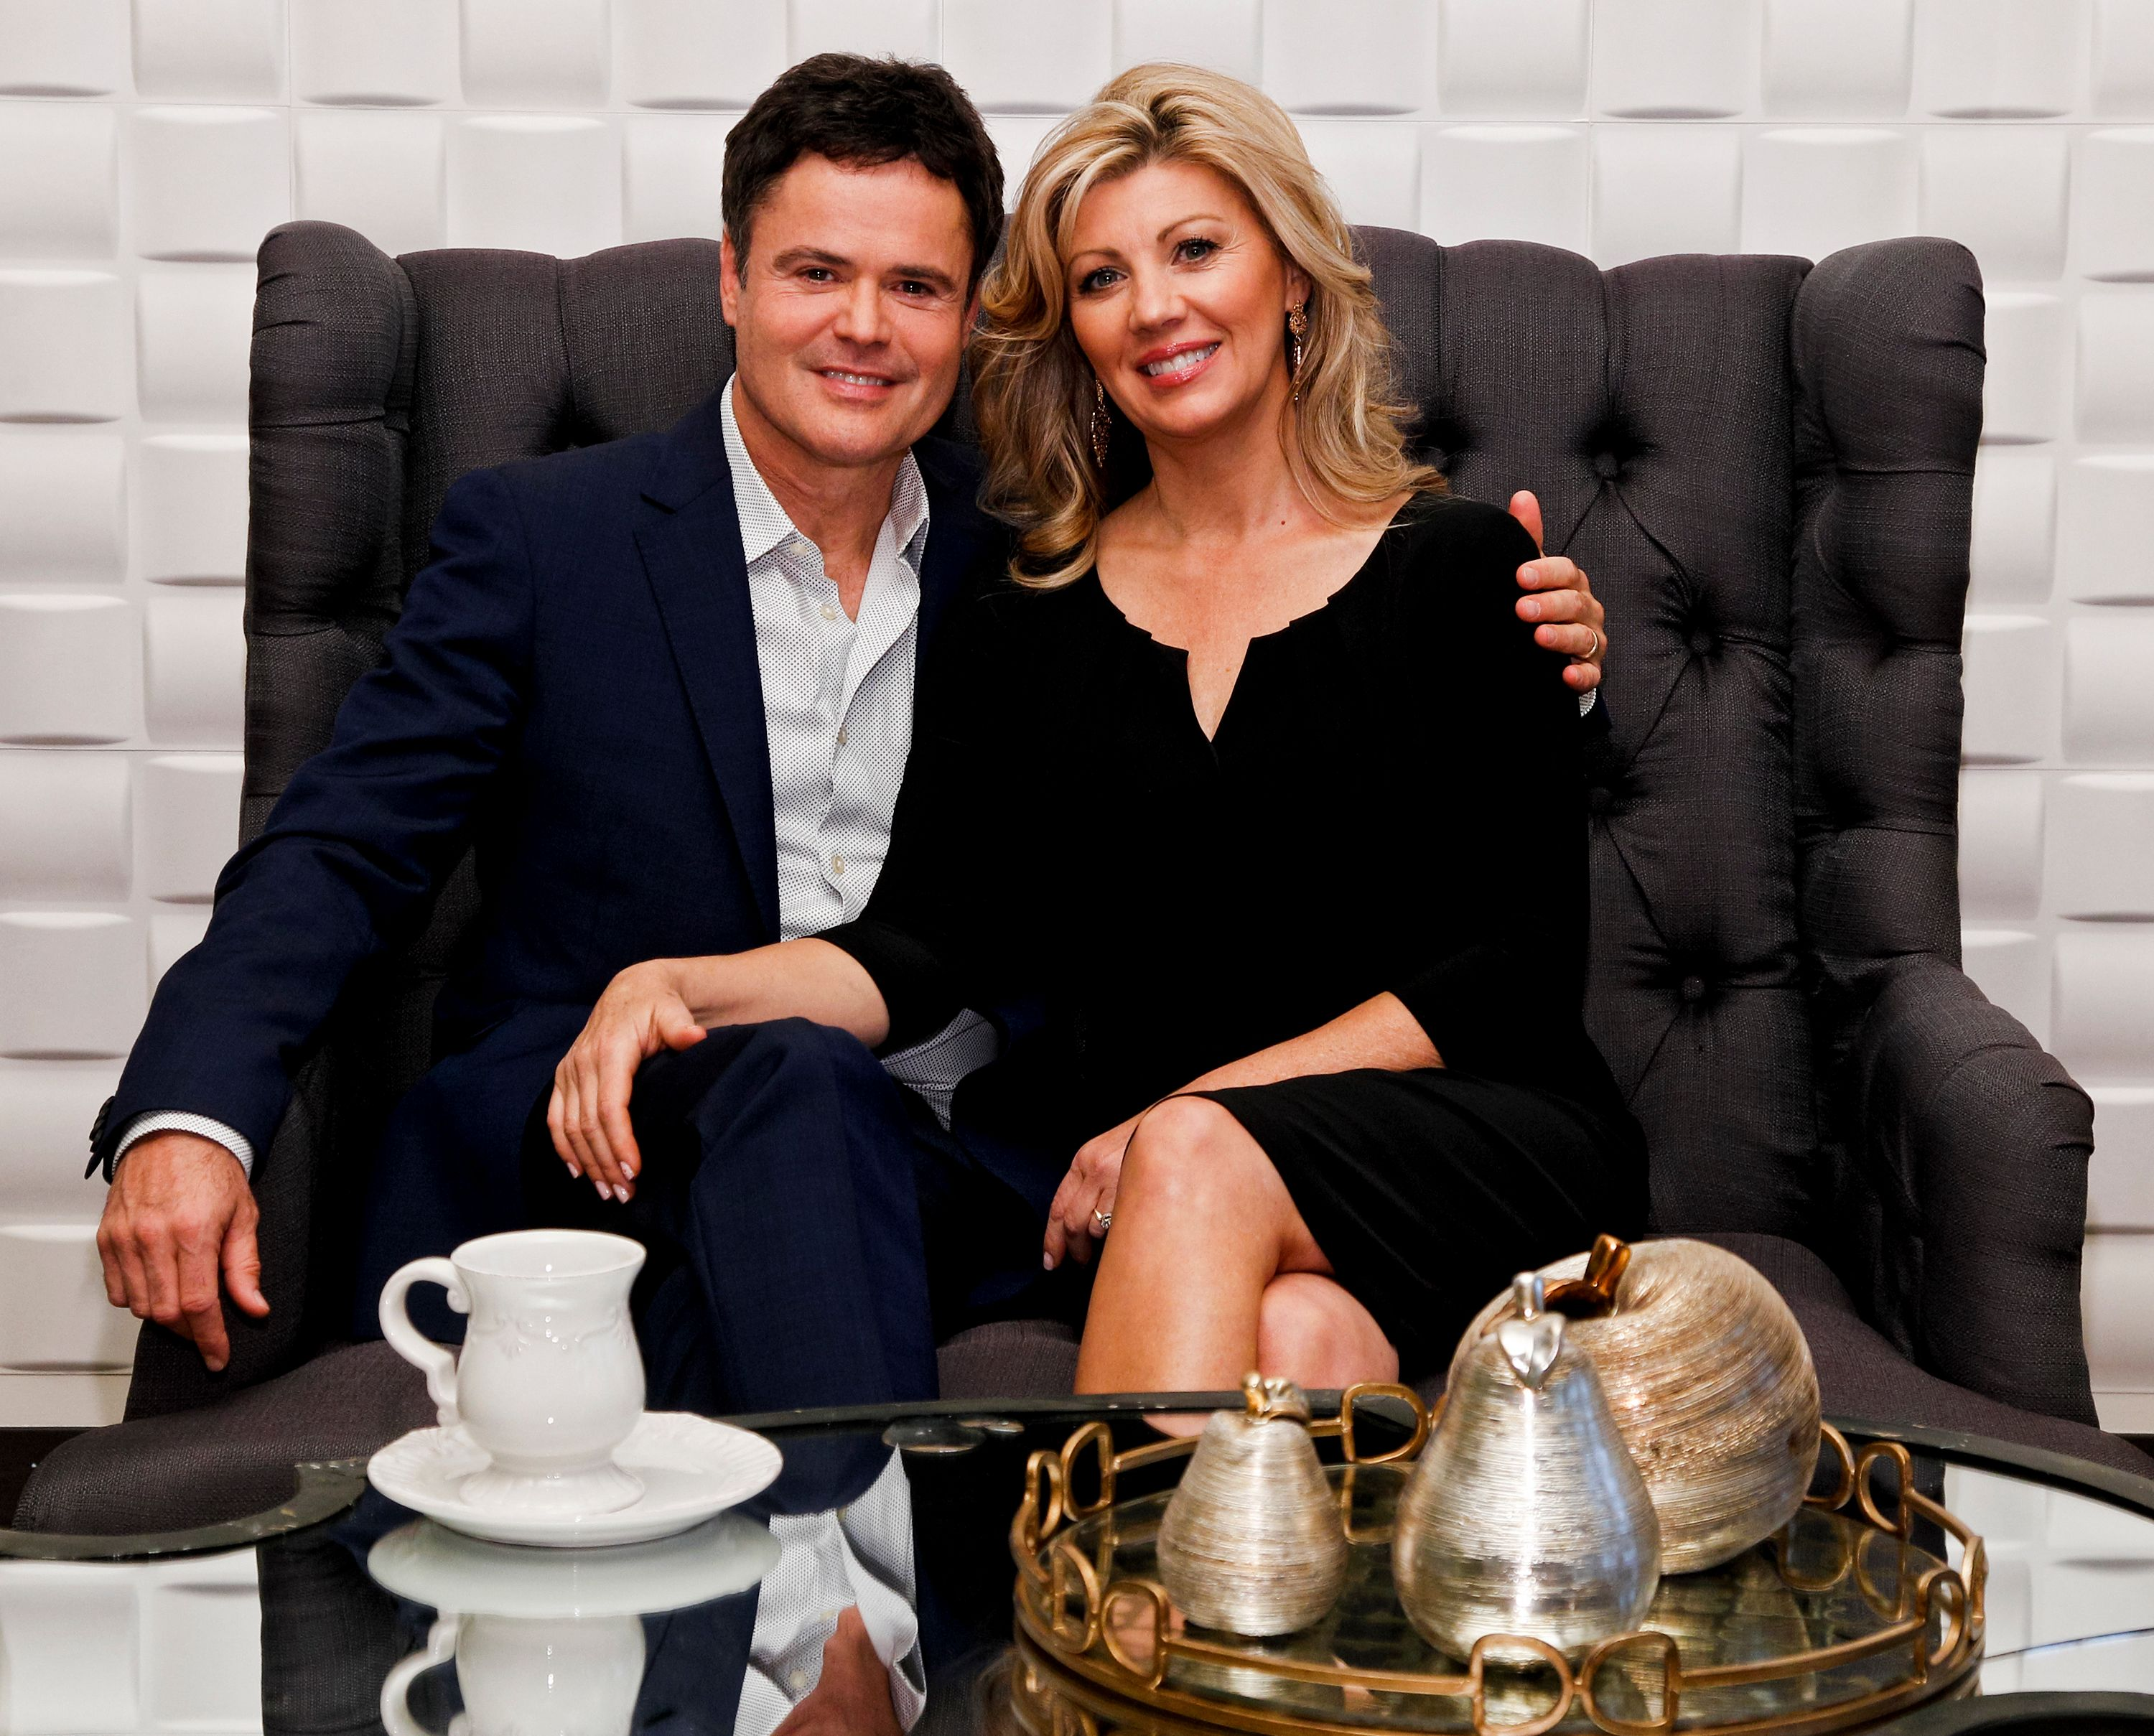 Donny and Debbie Osmond at the launch of Donny Osmond Home on September 23, 2013, in New York City | Photo: Brian Ach/WireImage/Getty Images